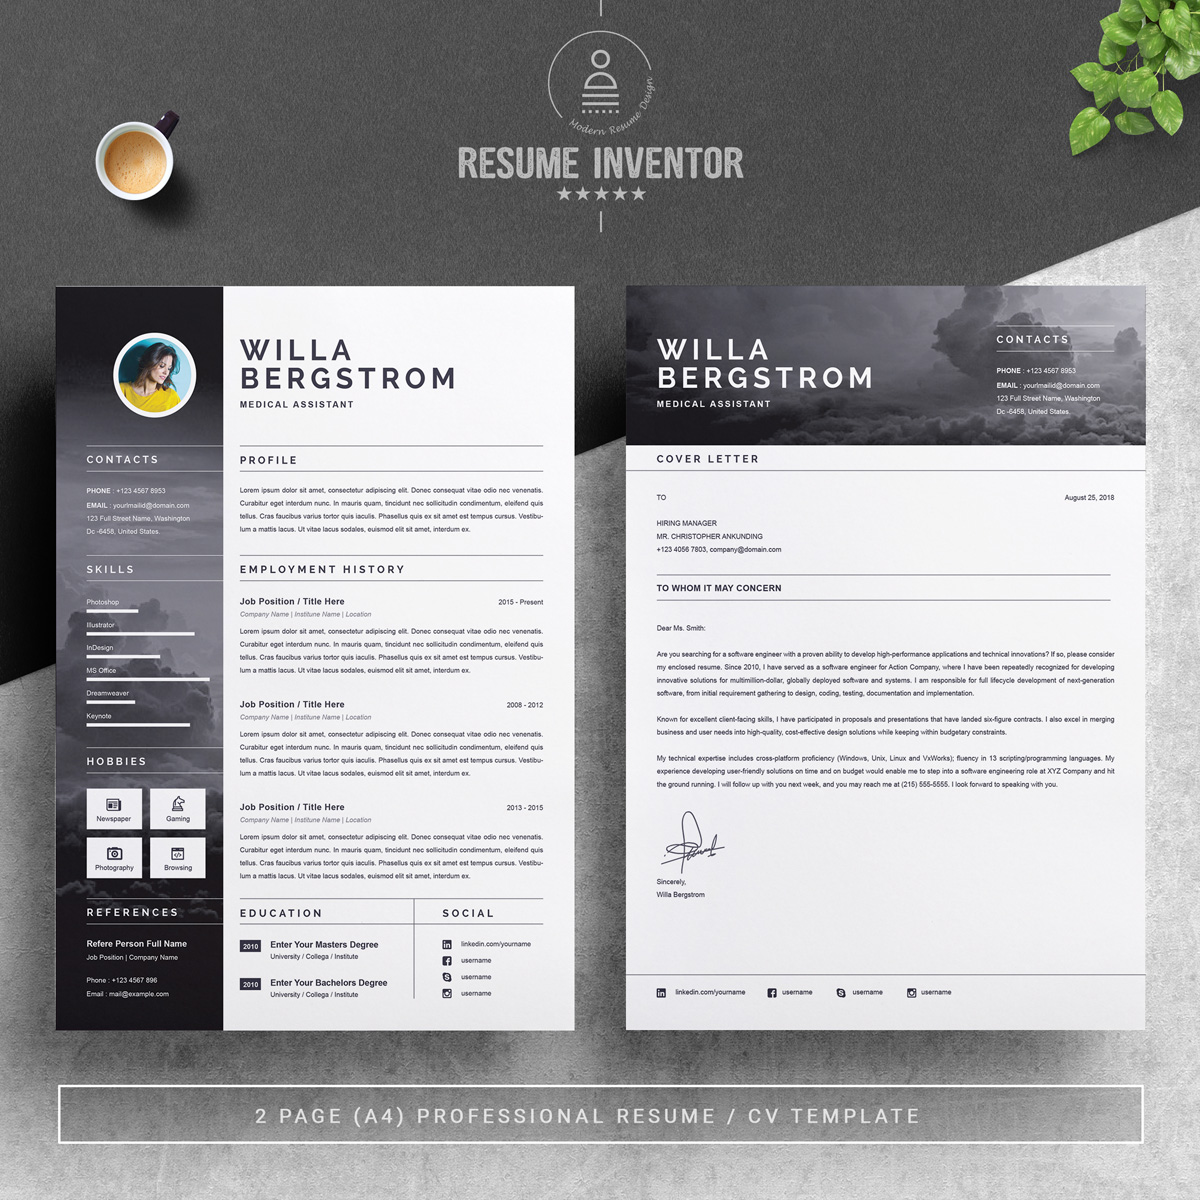 https://s3u.tmimgcdn.com/1860567-1554009162386_02_2-Pages-Free-Resume-Design-Template.jpg